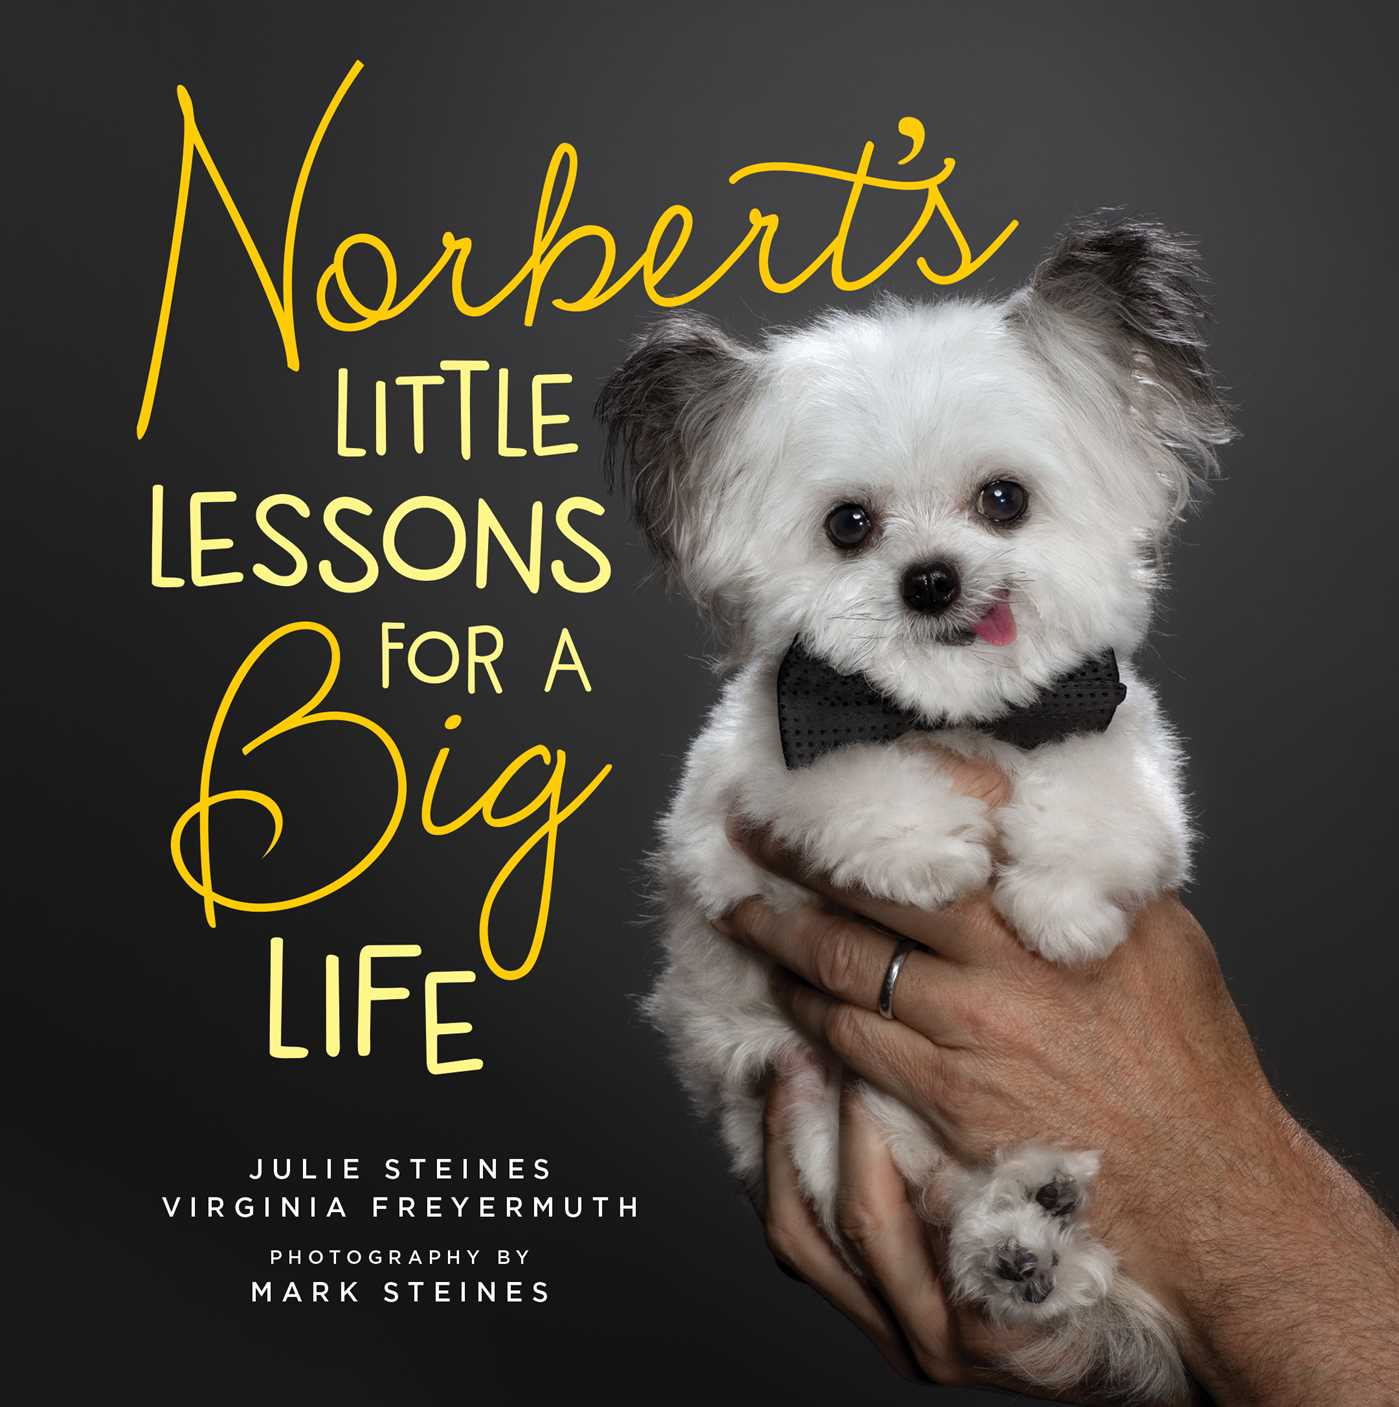 https://i0.wp.com/d28hgpri8am2if.cloudfront.net/book_images/onix/cvr9781501187315/norbert-s-little-lessons-for-a-big-life-9781501187315_hr.jpg